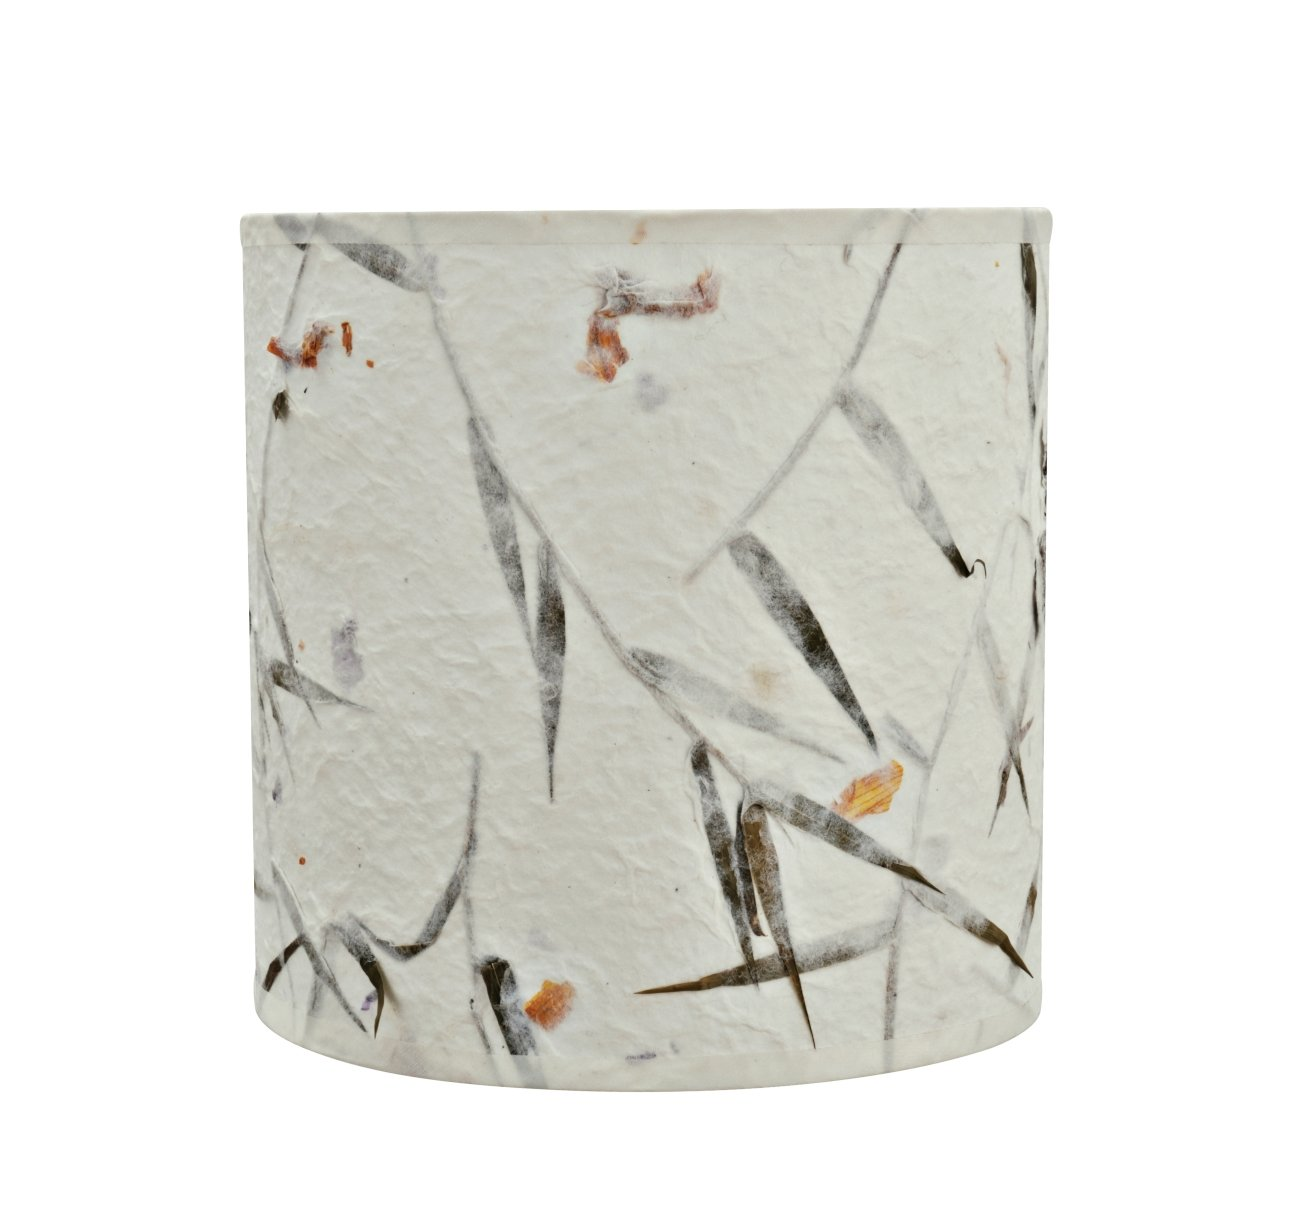 Aspen Creative 31223 Transitional Drum (Cylinder) Shaped Spider Construction Lamp Shade, 8'' x 8'' x 8'', Off White